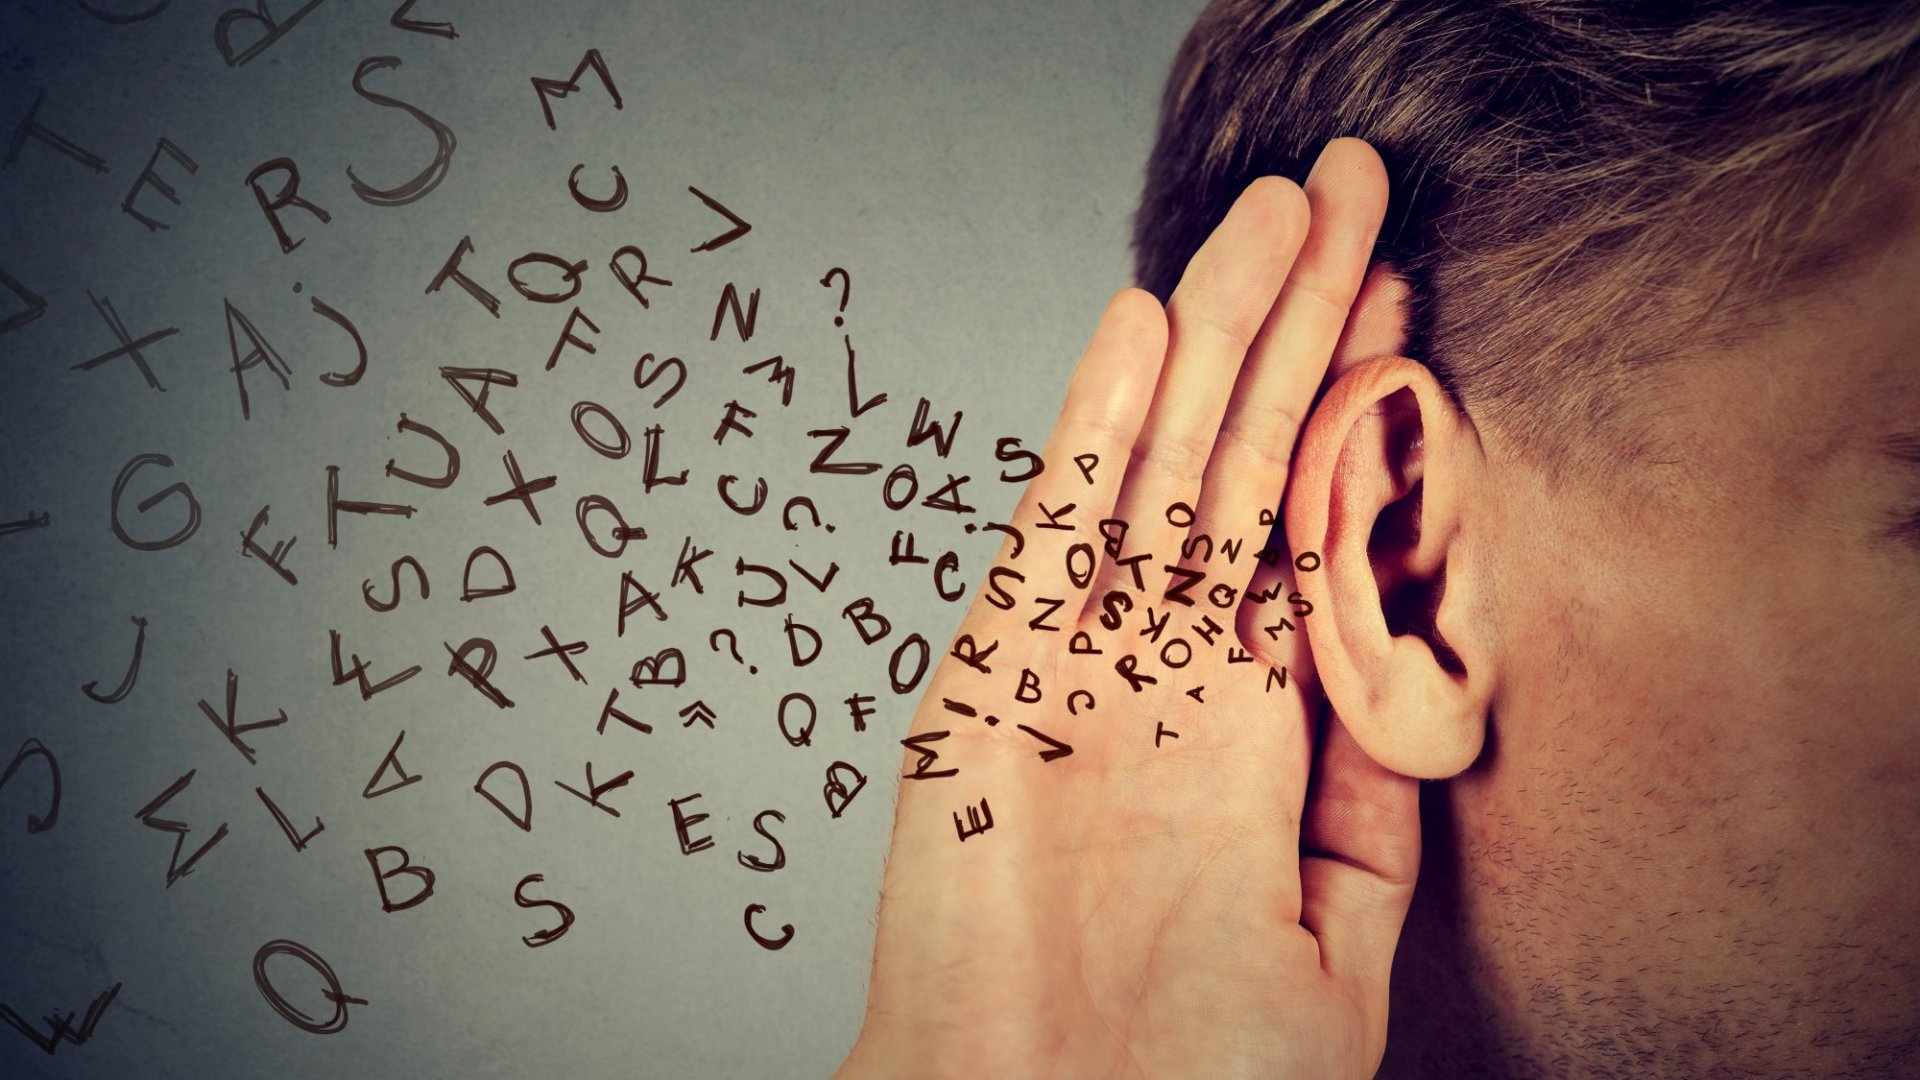 When communicating in a business context, it really all comes down to two words that clear everything up.